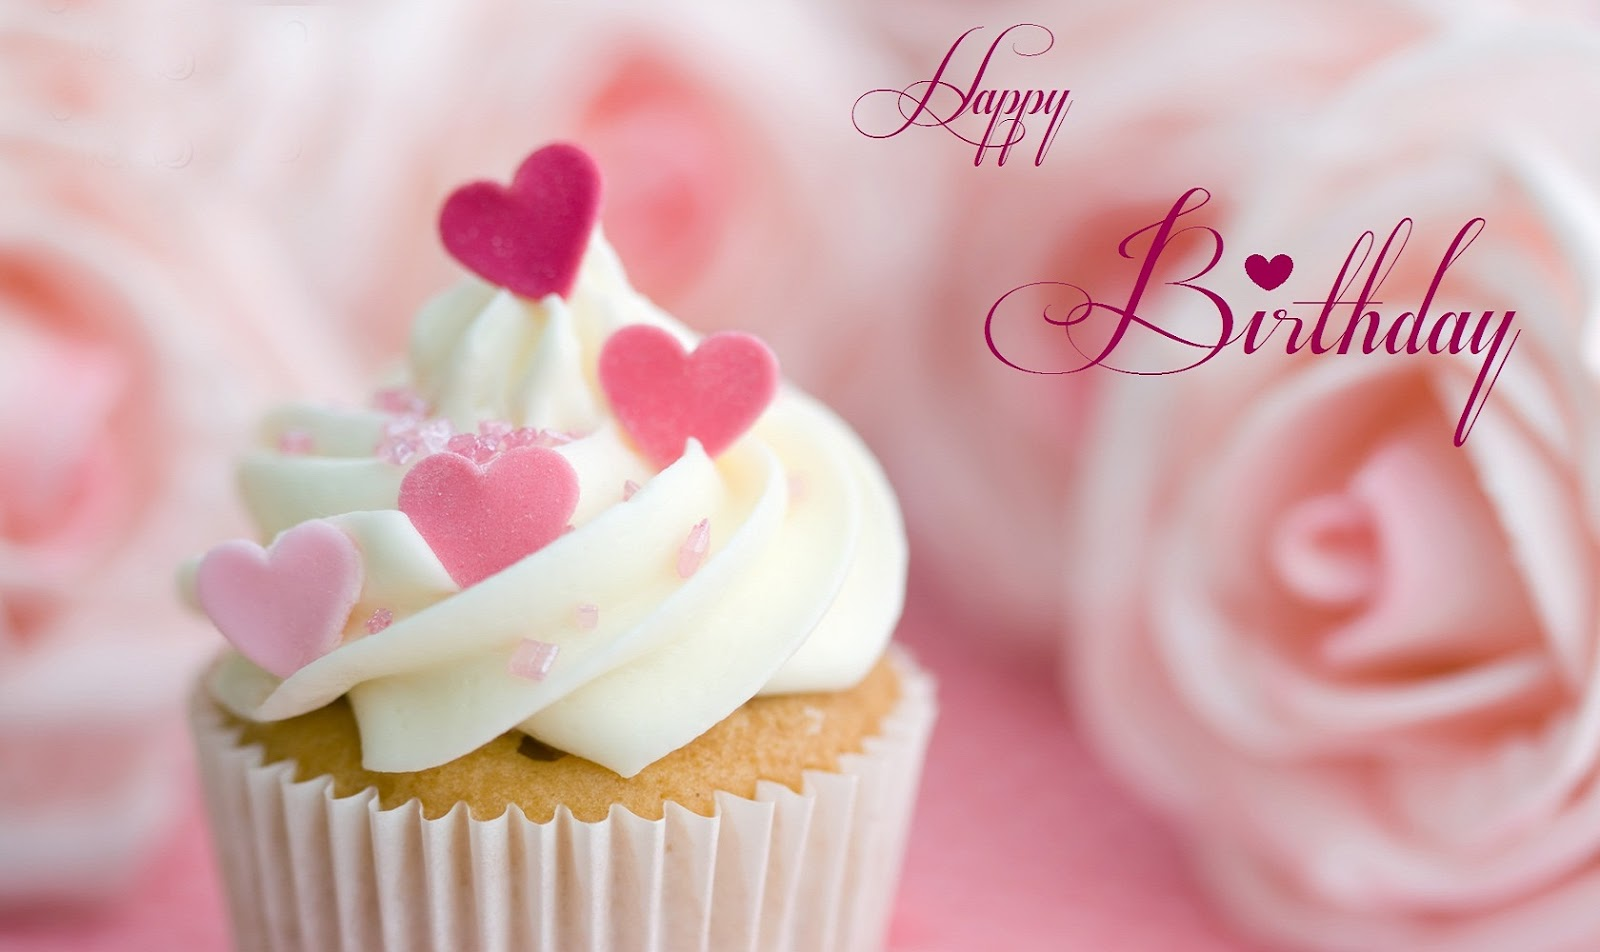 Birthday Wishes For Her Images ~ Happy birthday to you romantic birthday wish for her love